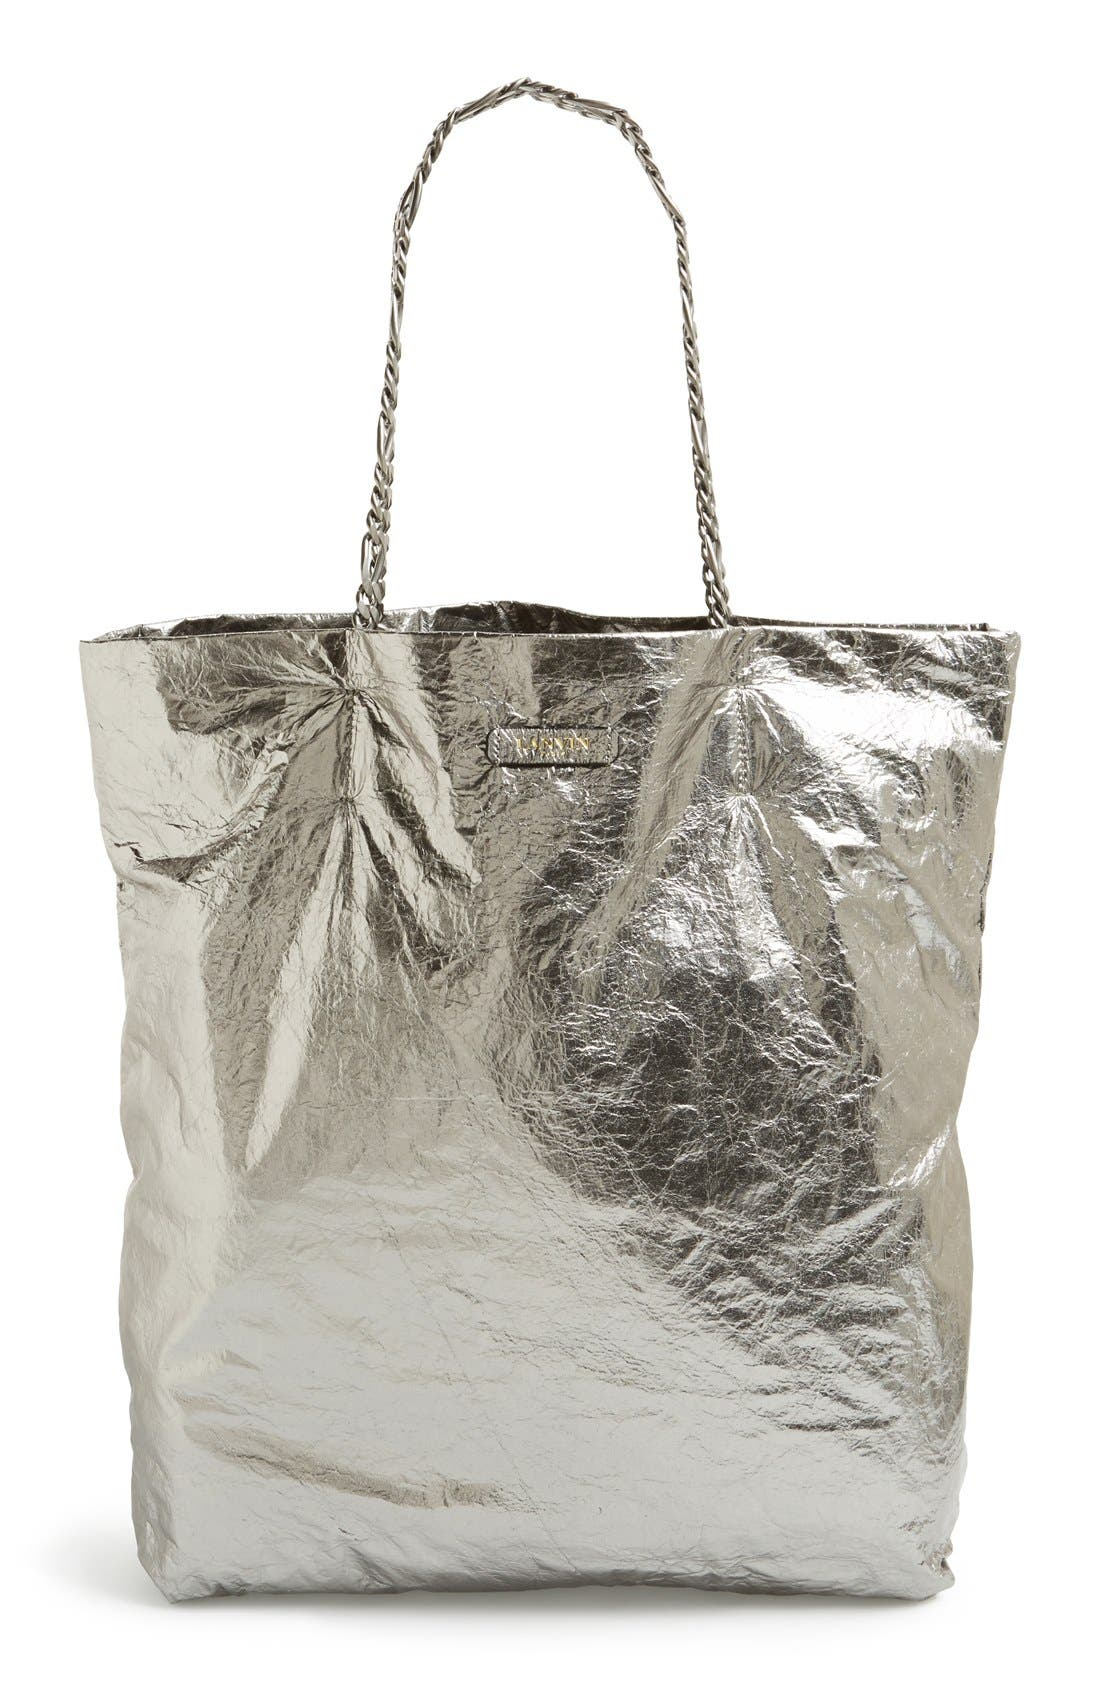 Alternate Image 1 Selected - Lanvin 'Paper Bag' Laminated Lambskin Tote